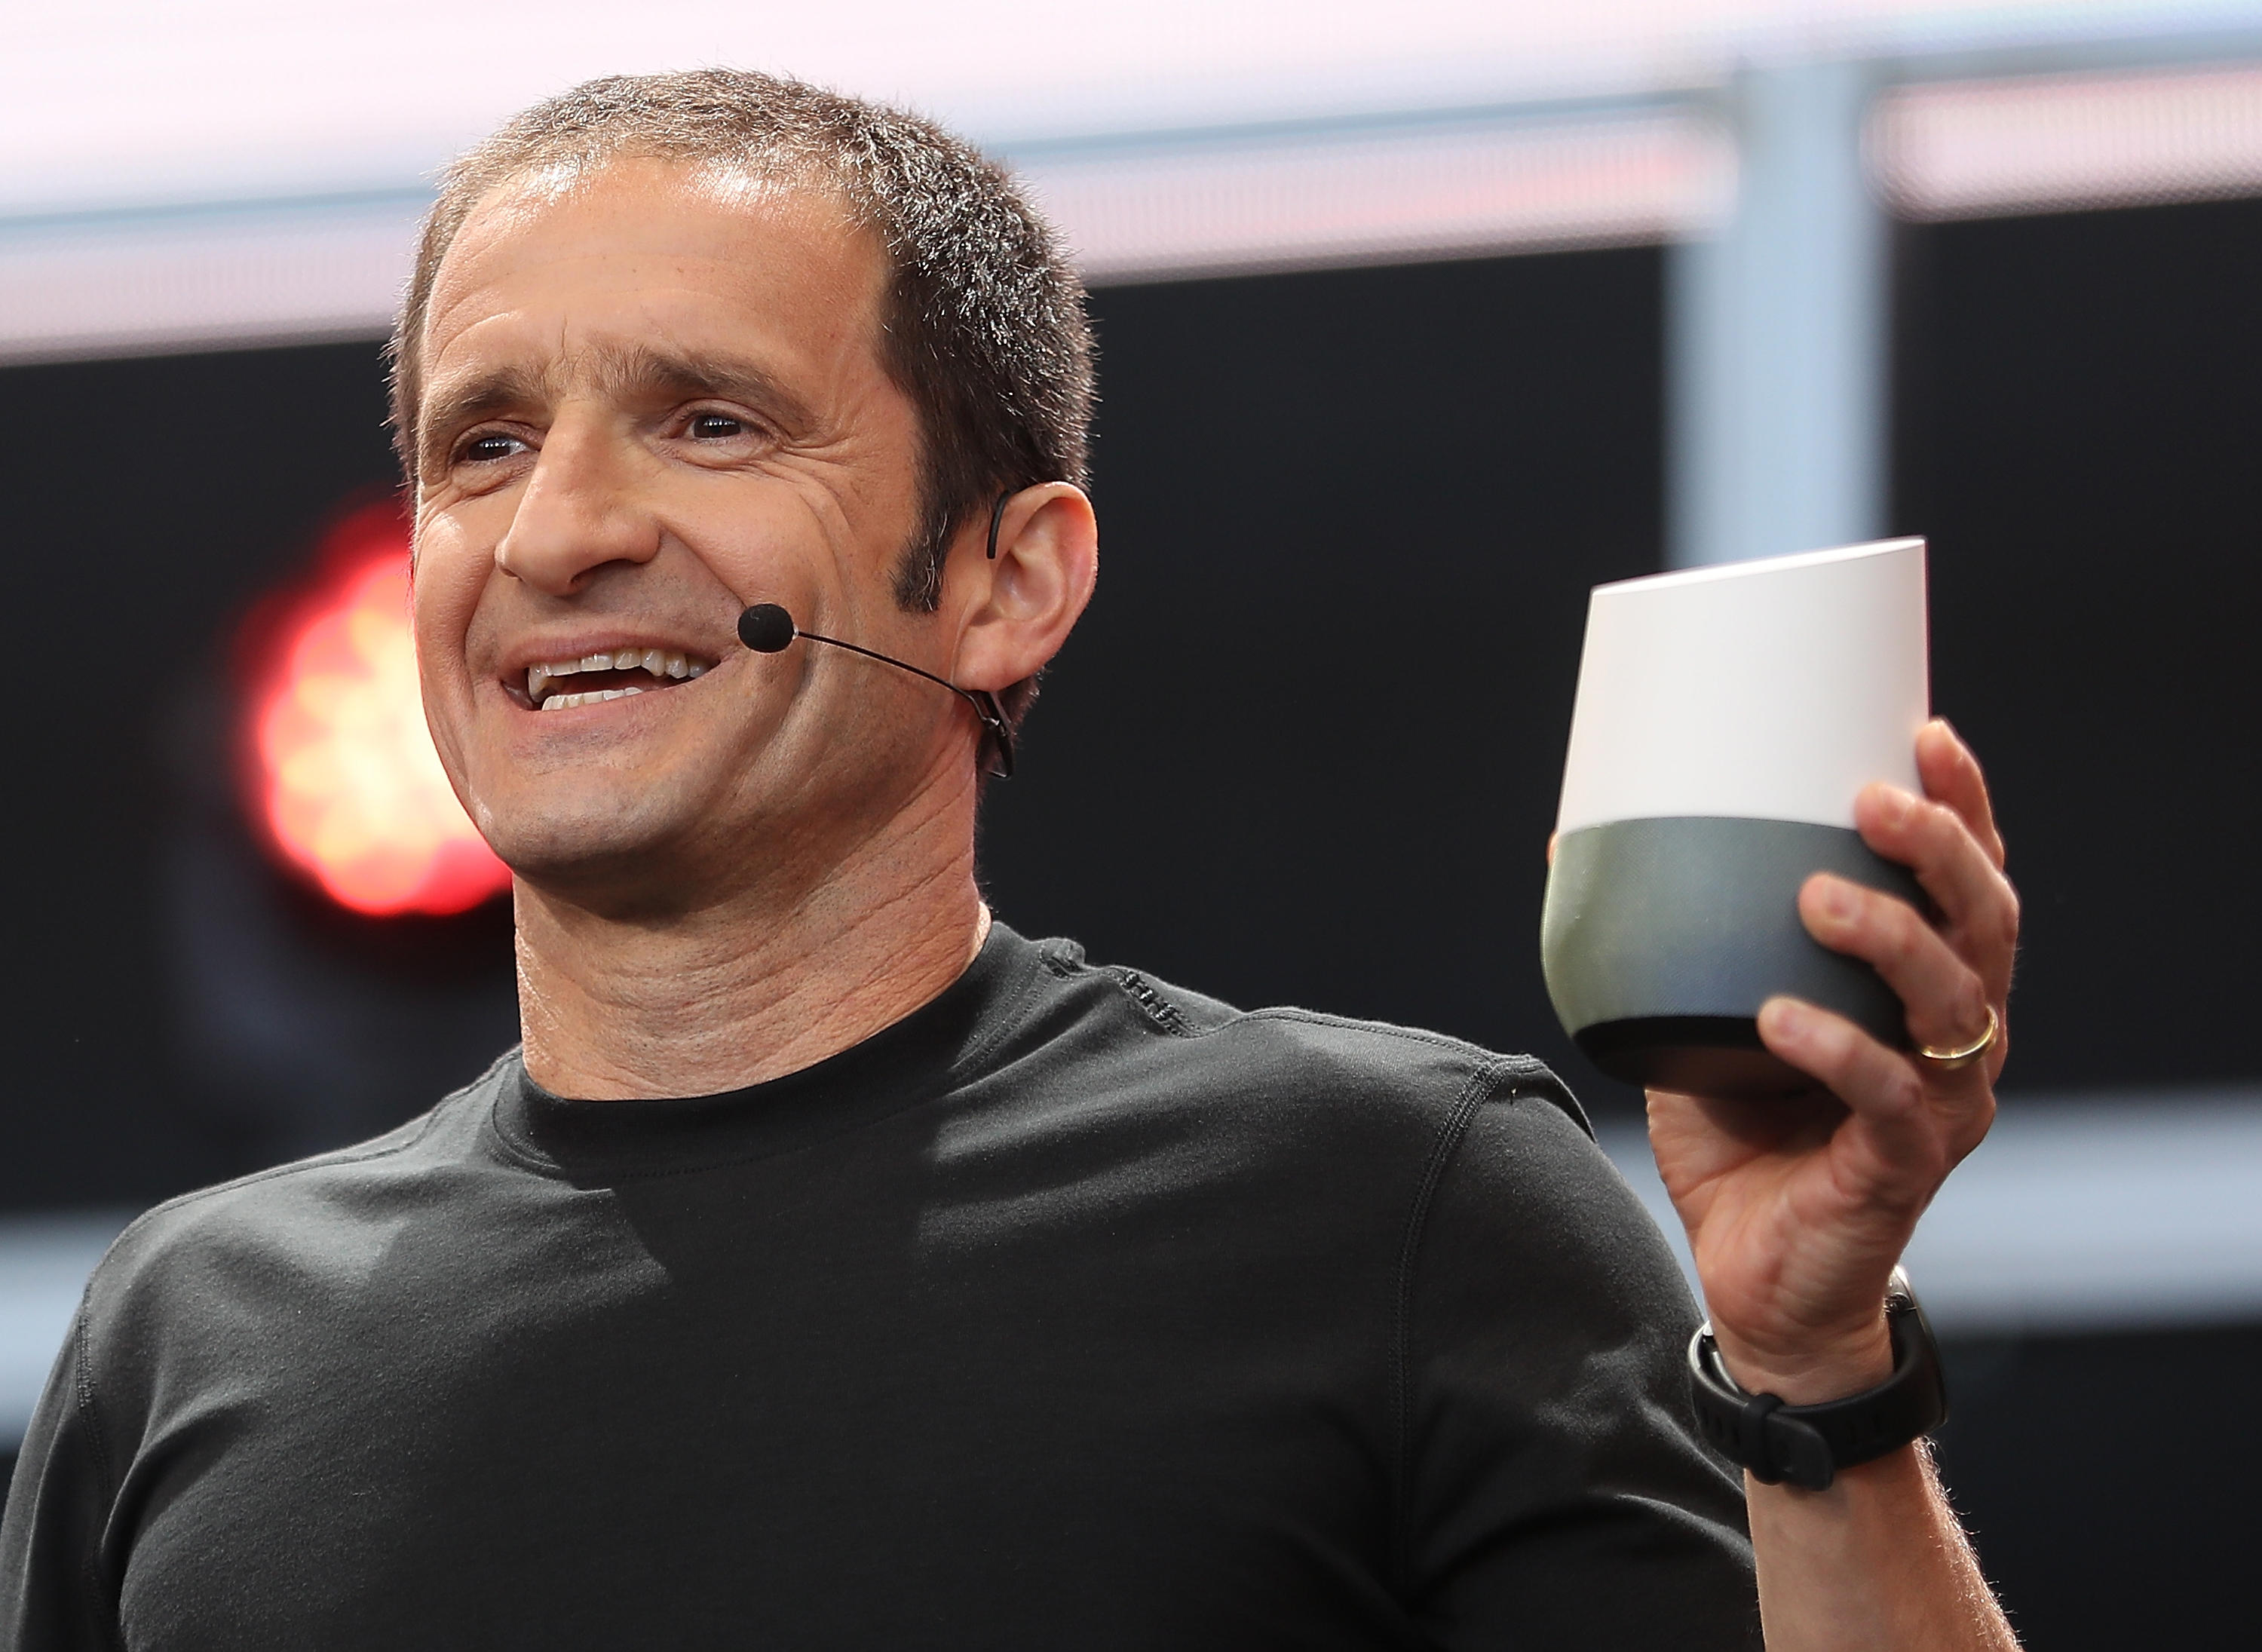 Google Vice President of Product Management Mario Queiroz shows the new Google Home voice-controlled speaker onstage Google I/O 2016